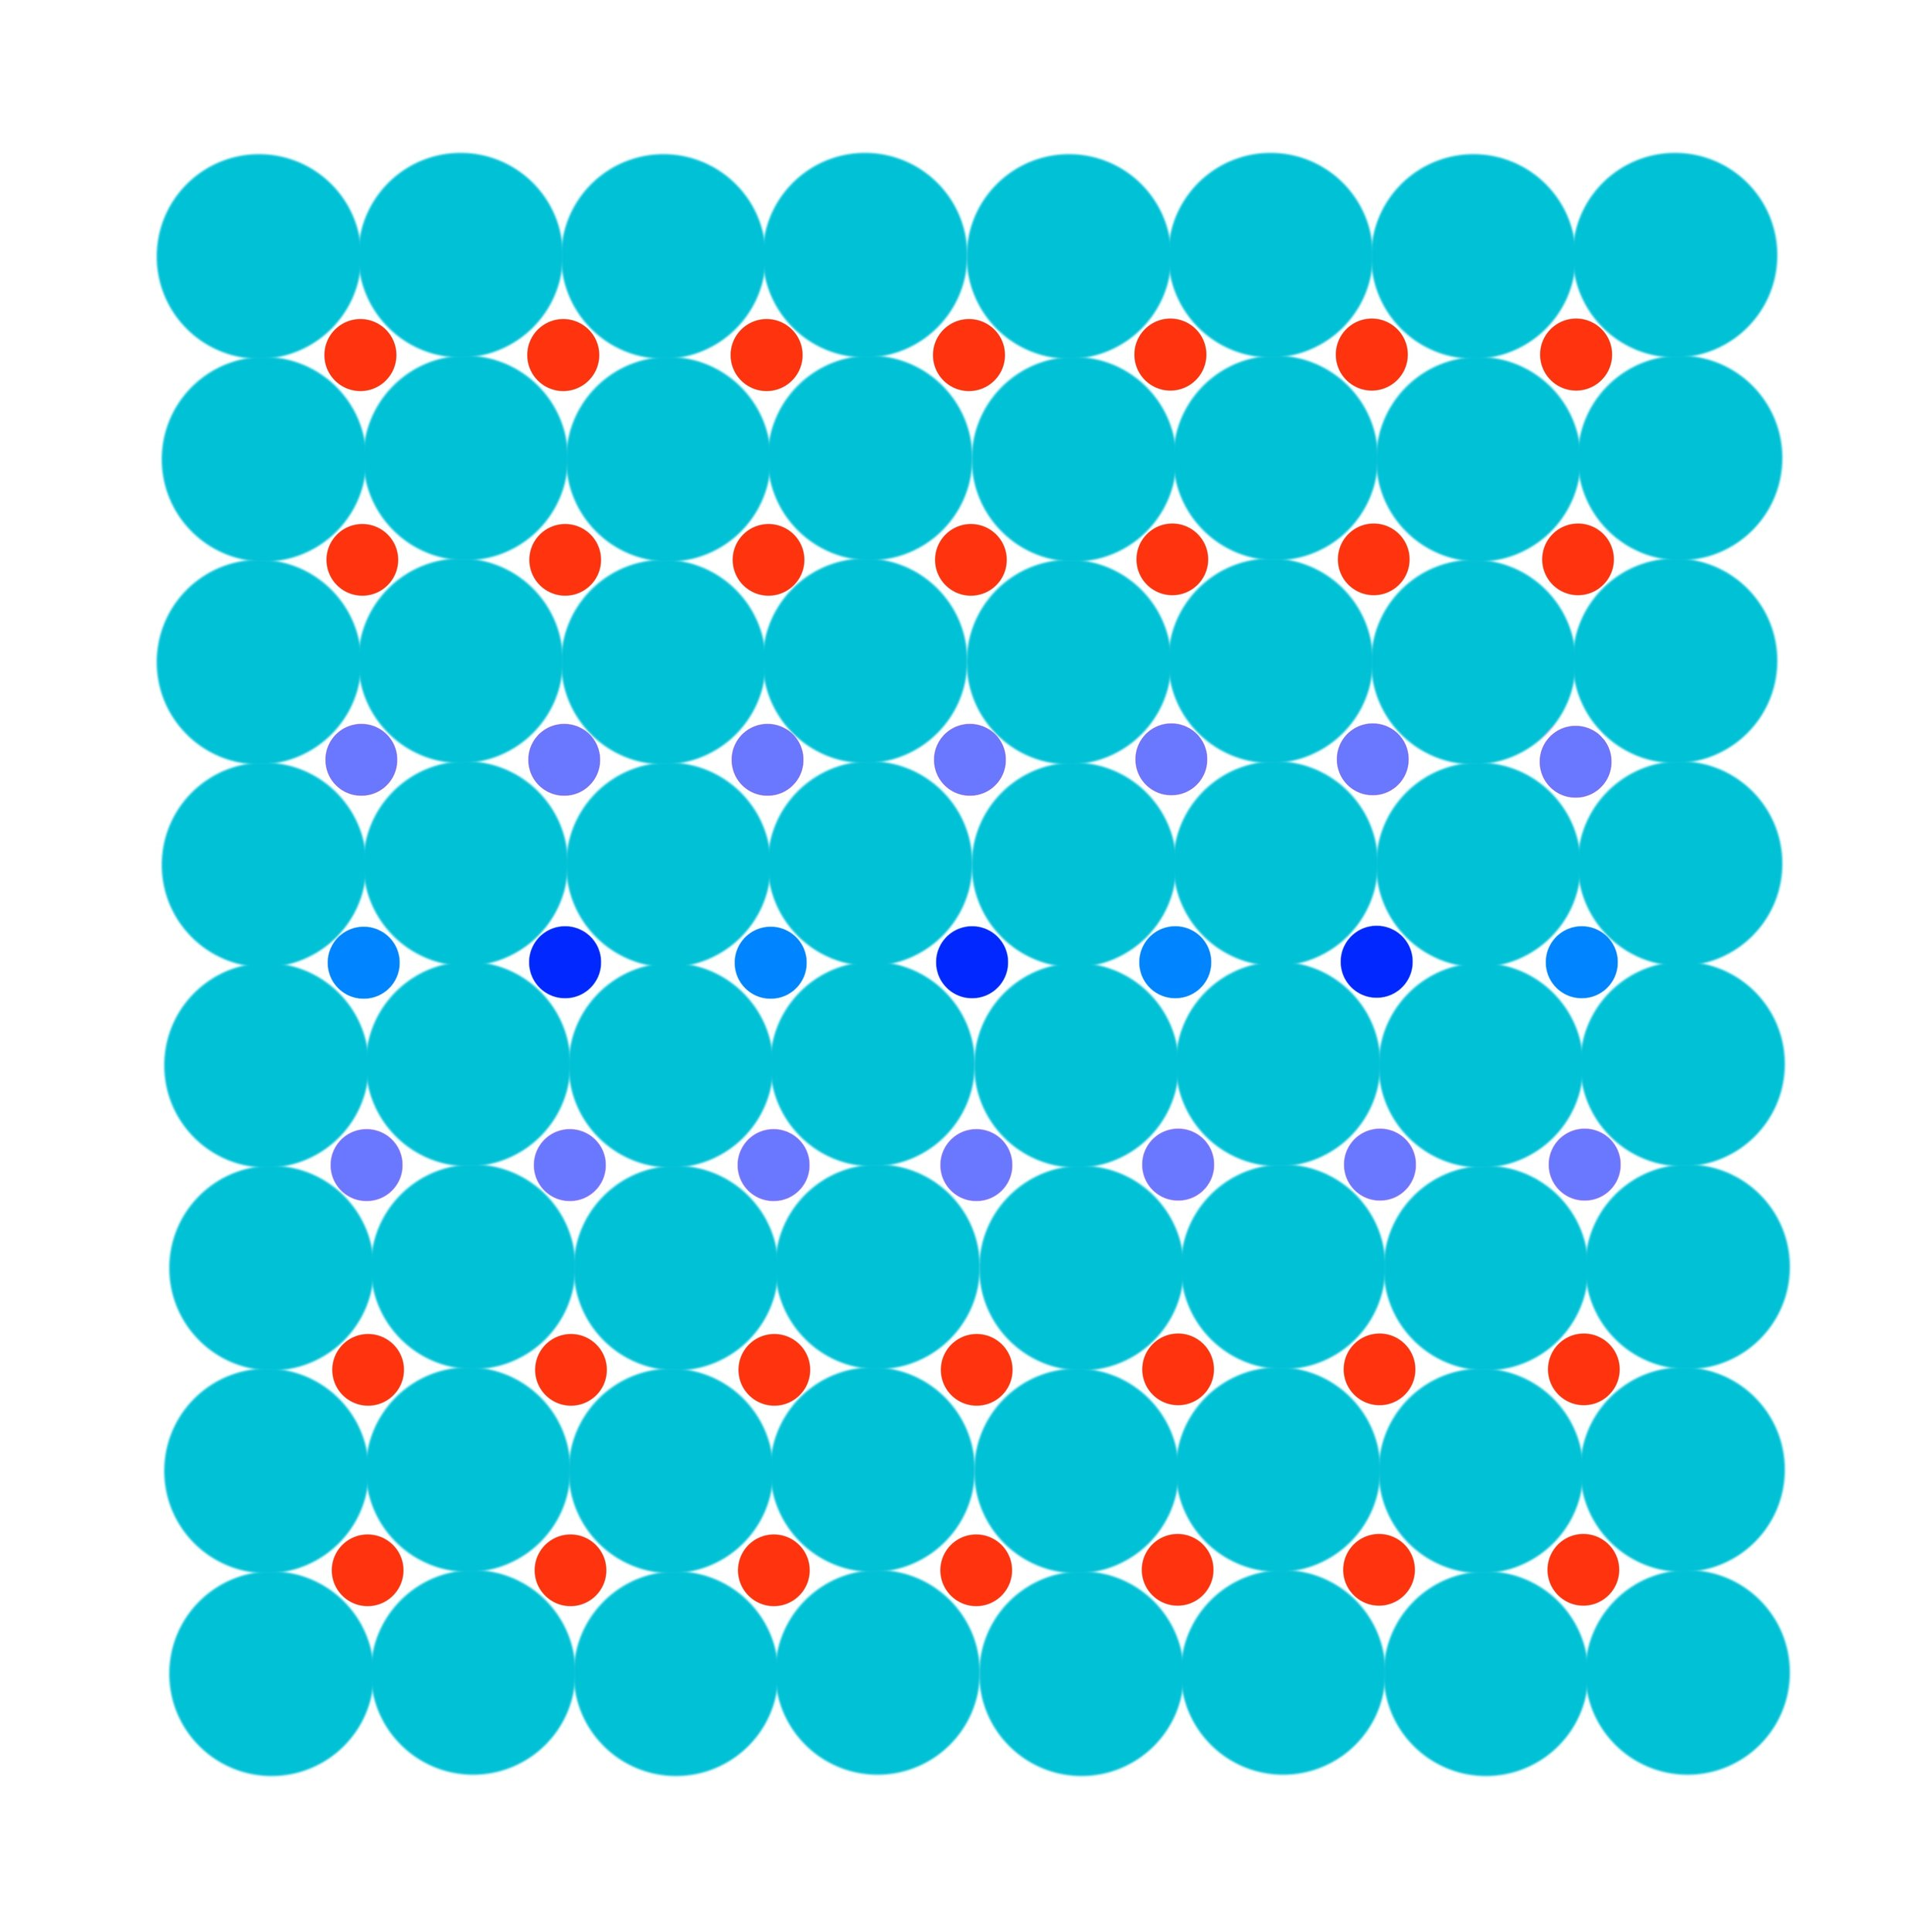 Dot Structure 2 - French Blue